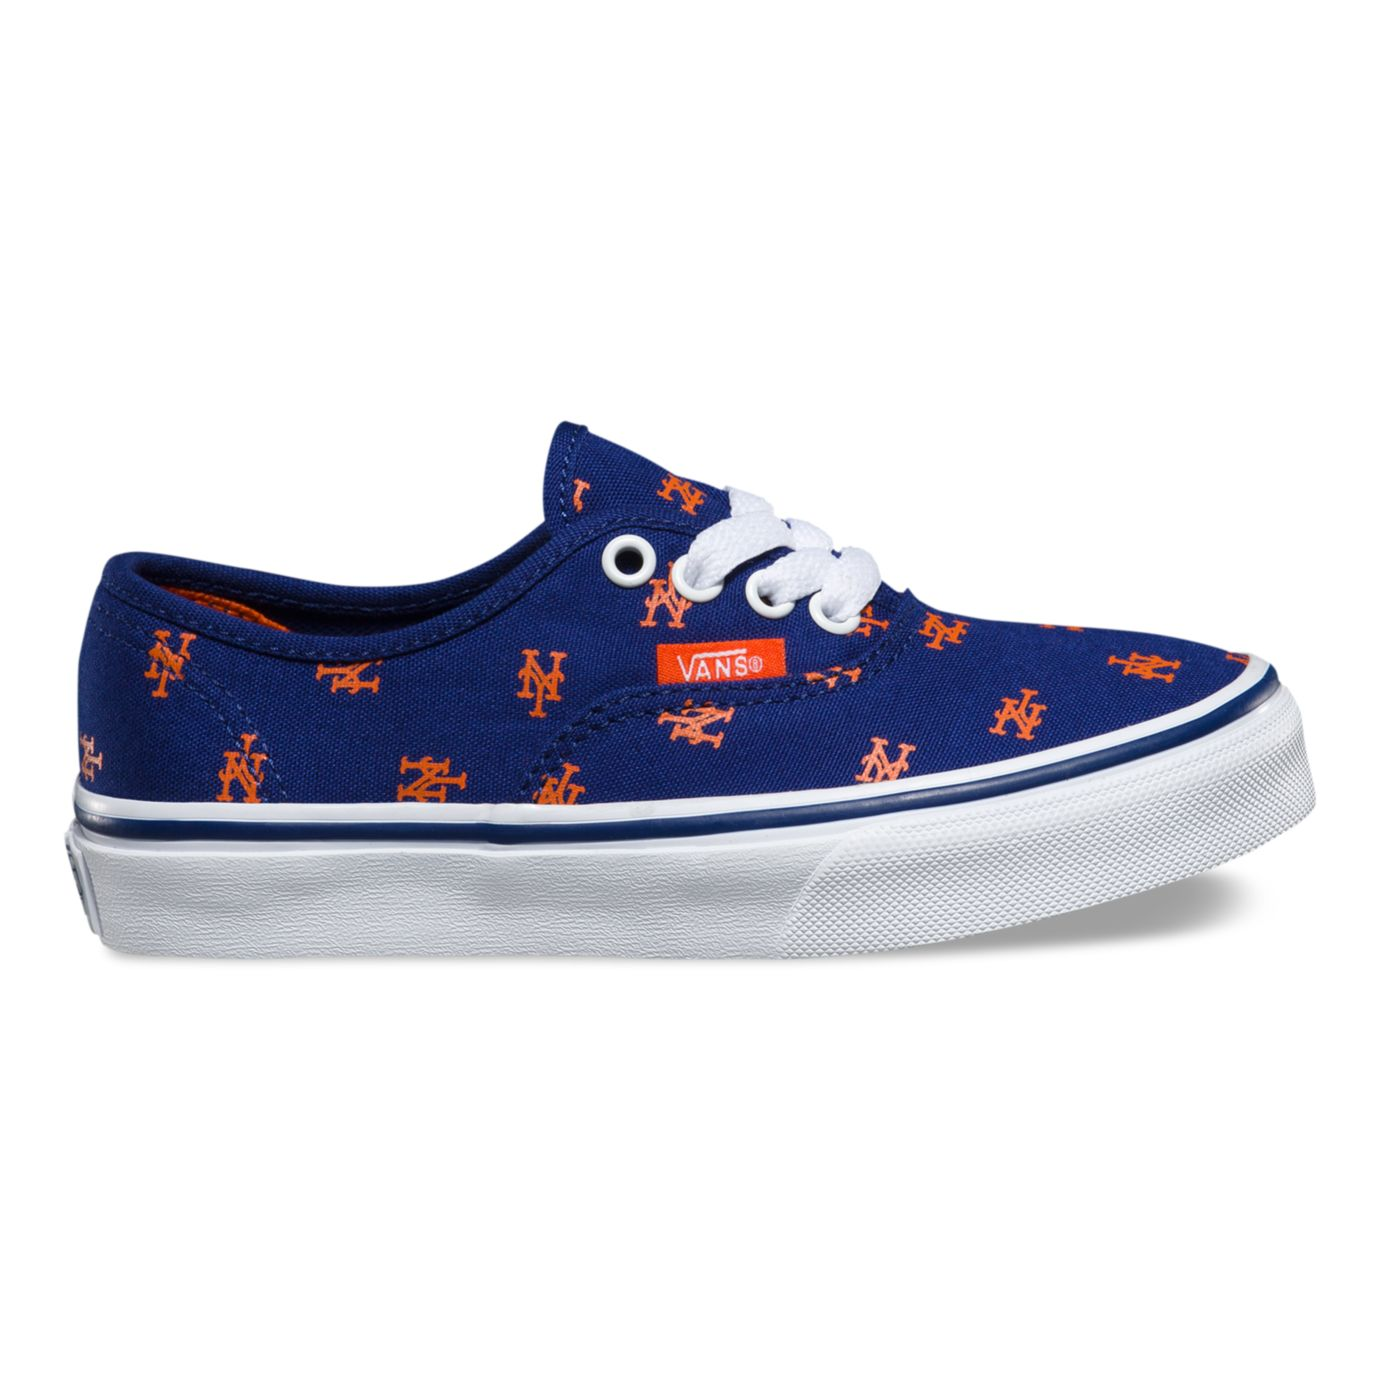 1c9f7b95401 Vans x Major League Baseball